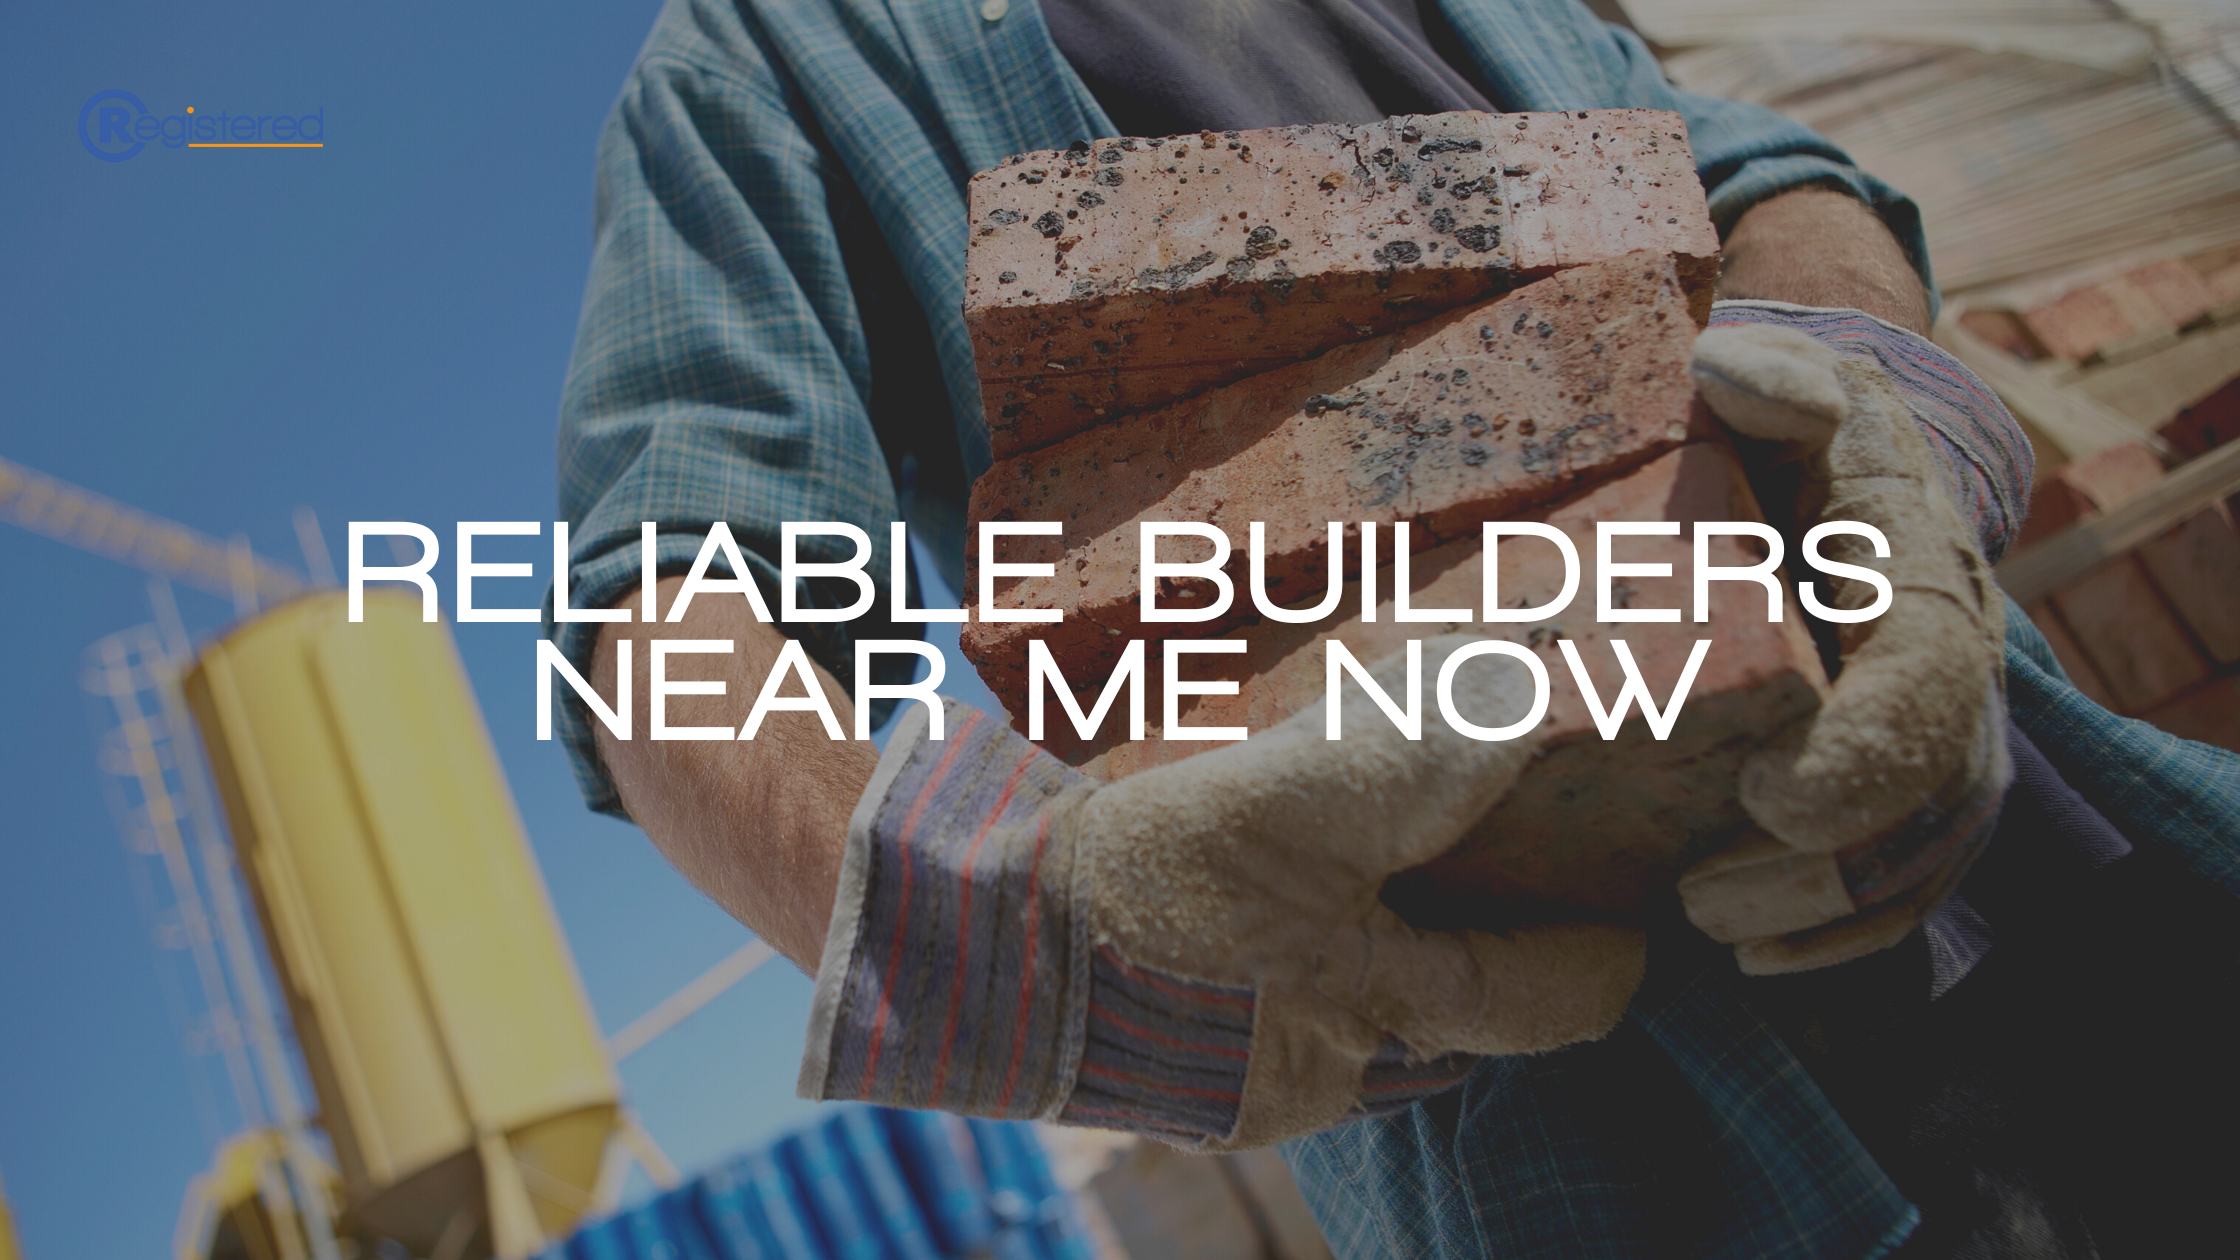 Reliable Builders Near Me Now